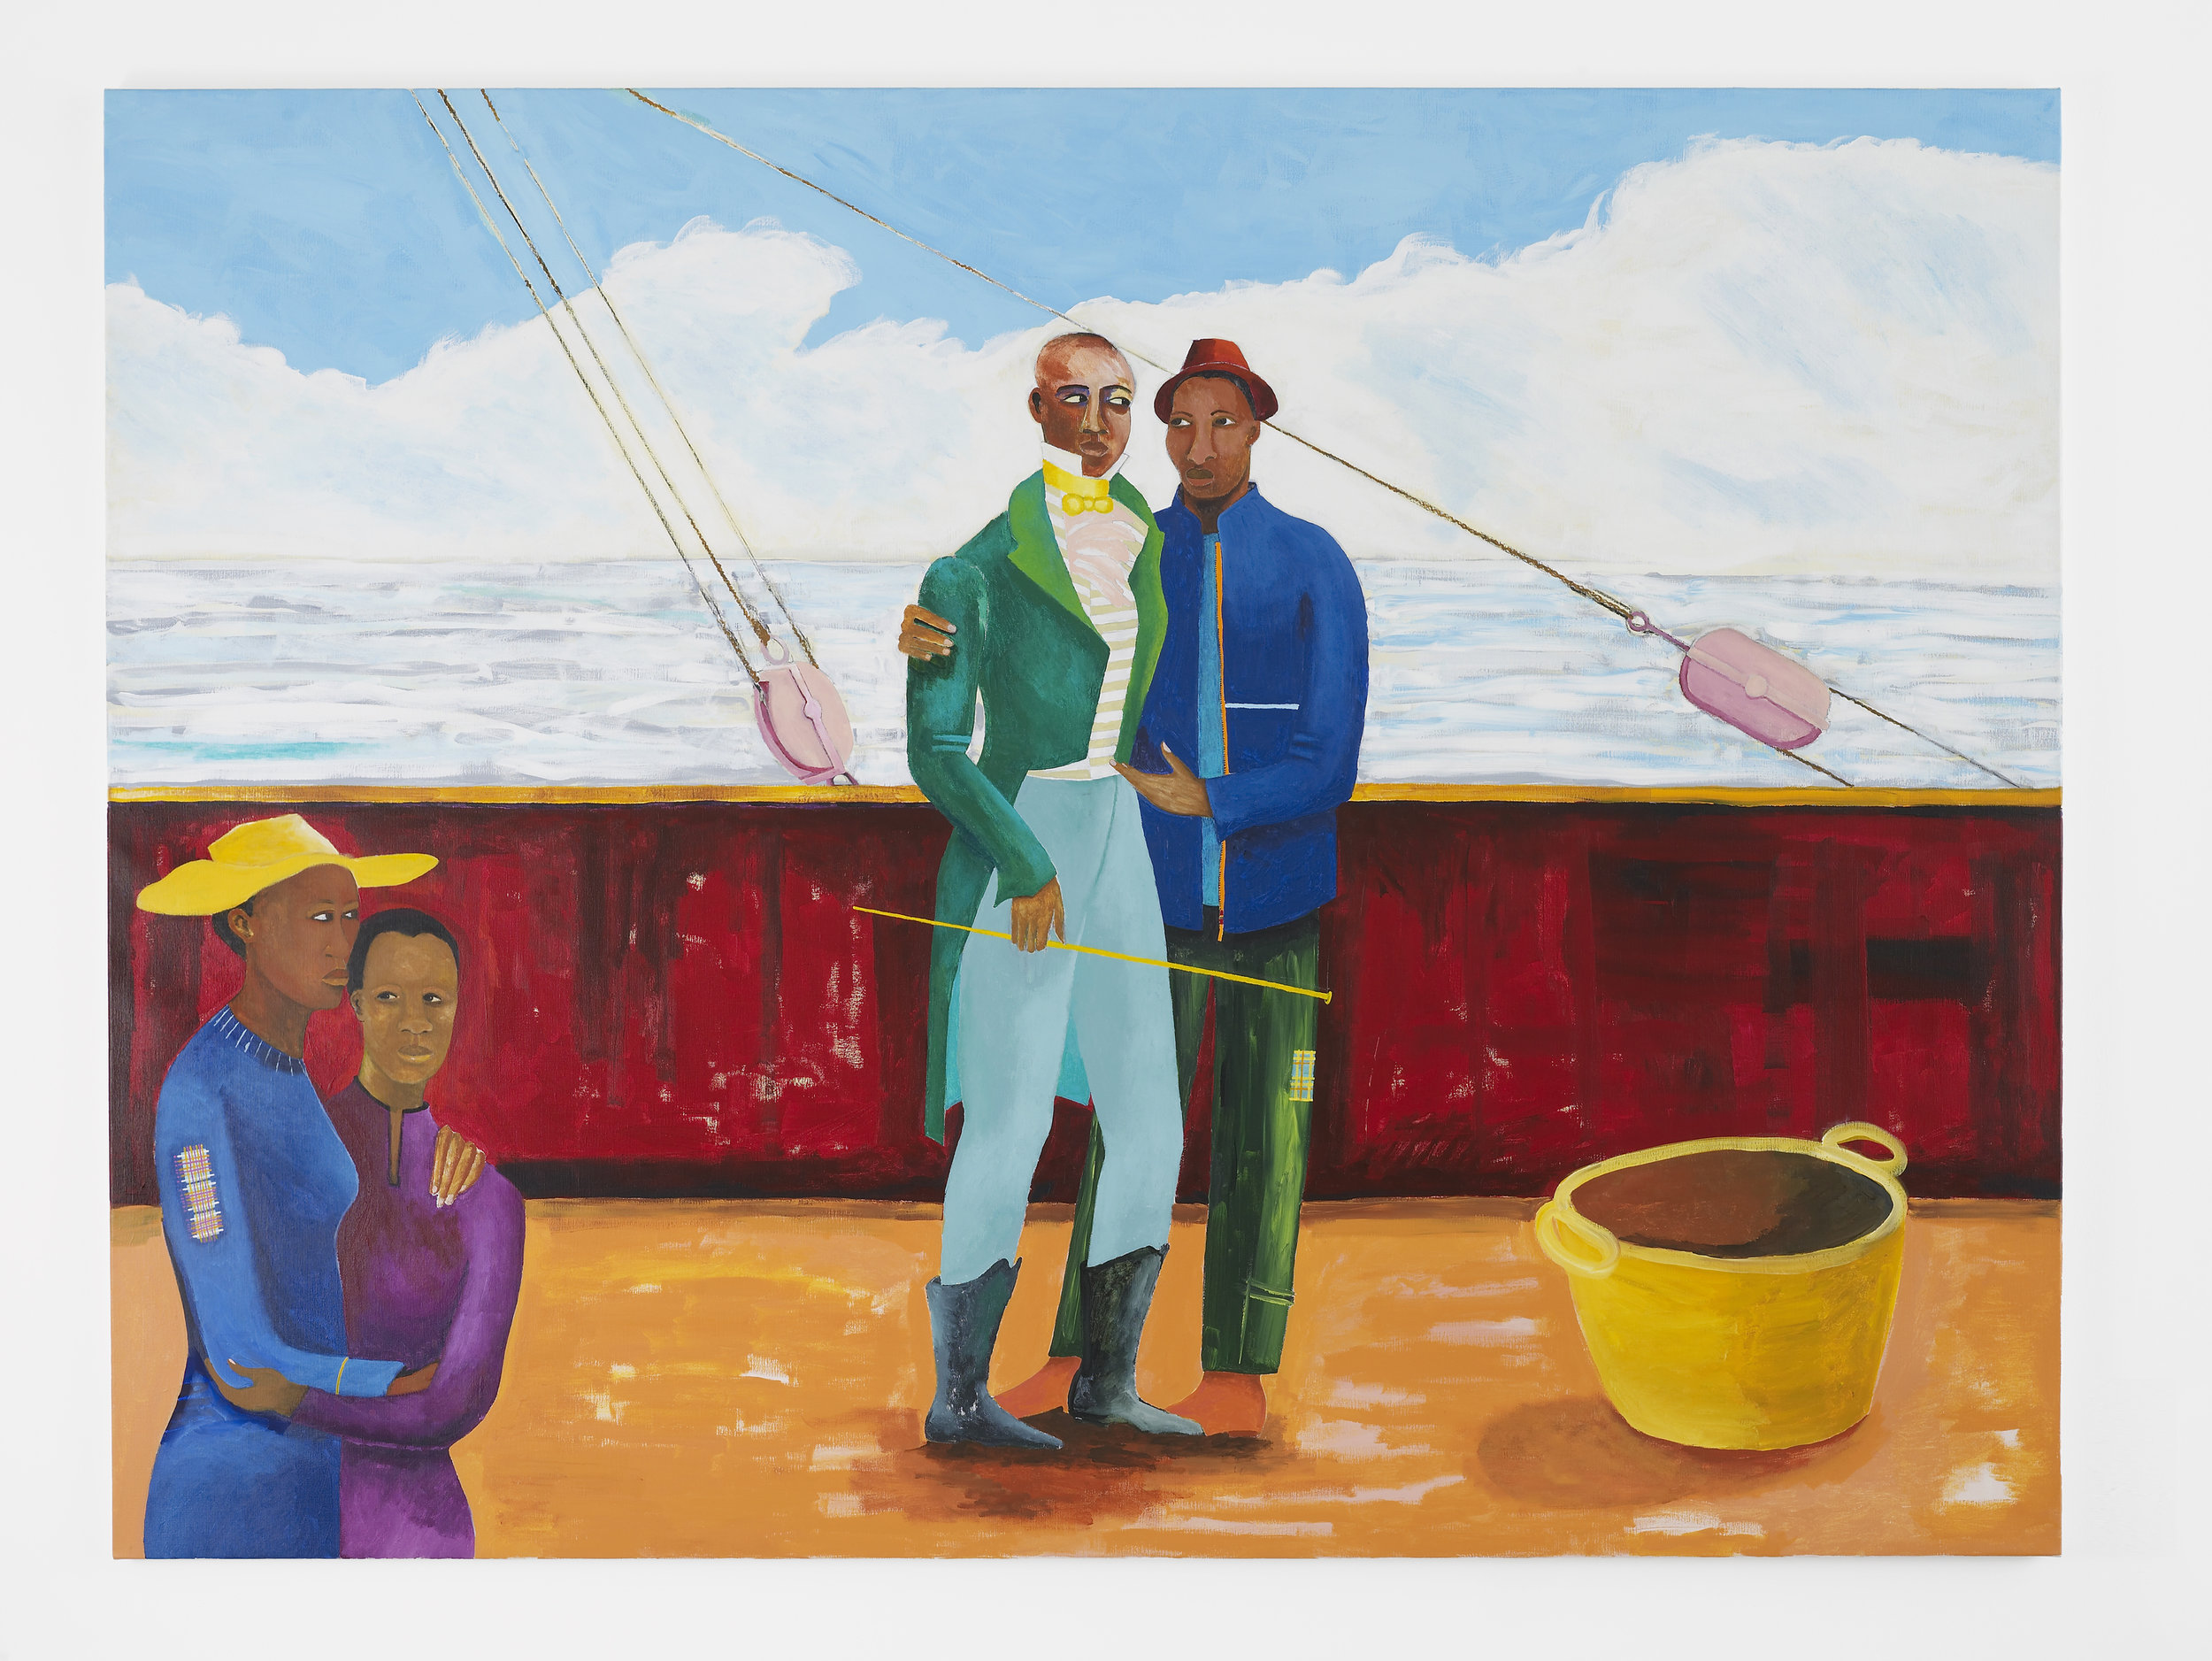 Lubaina Himid, Le Rodeur: The Captain and the Mate, 2017–18. Acrylic on canvas, 72 x 96 1/8 in (183 x 244 cm). Courtesy the artist and Hollybush Gardens. Photo: Andy Keate